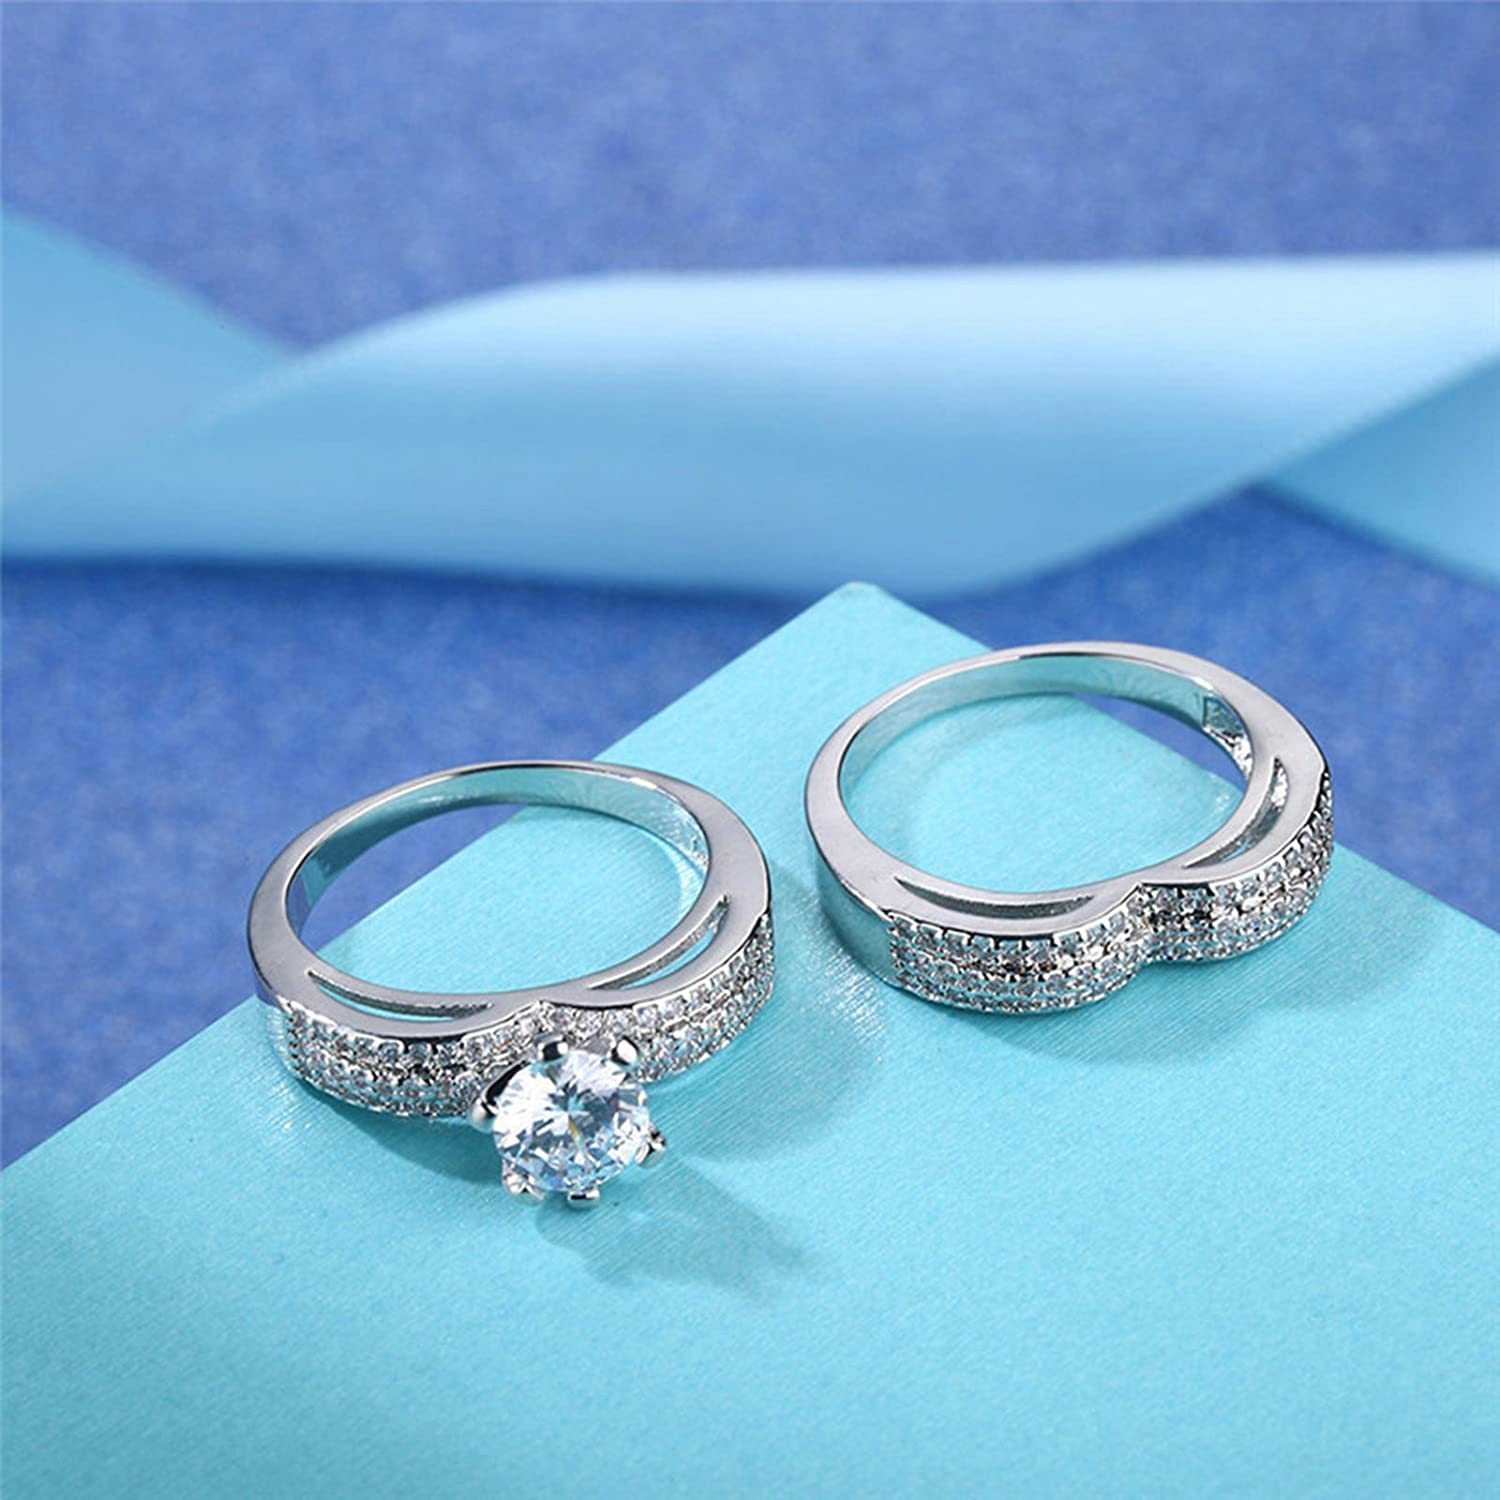 AMDXD Jewelry Silver Plated Engagement Rings for Women Heart Design Round Crystal